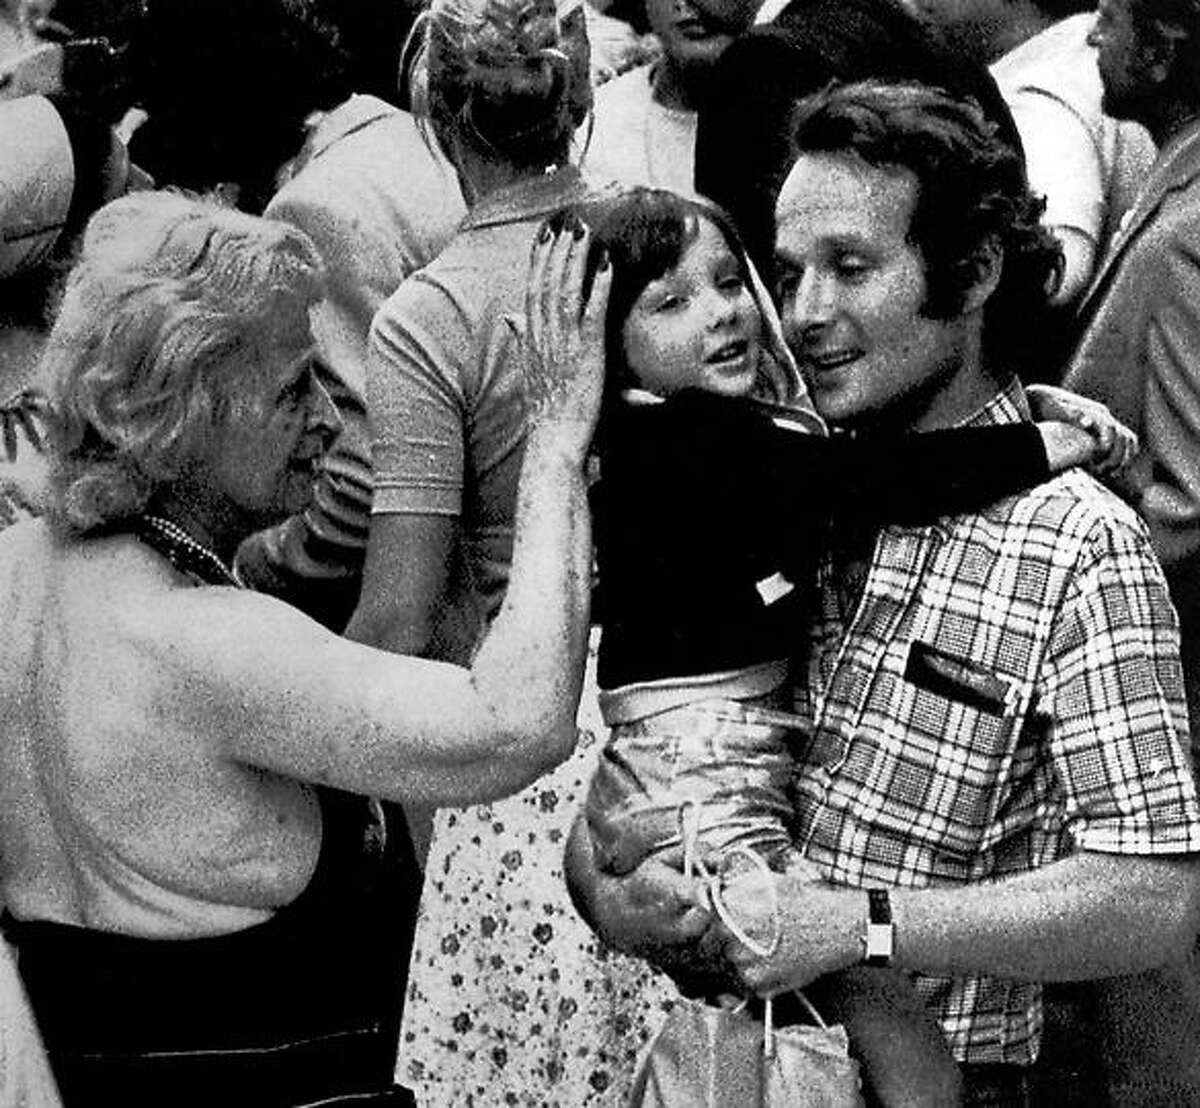 A father holds his daughter in his arms while a relative pats her head after the girl was flown to Orly Airport in Paris from Entebbe, Uganda, June 30, 1976. She was among 46 hostages released by Palestinian hijackers and flown to Paris in an Air France plane. (AP Photo)